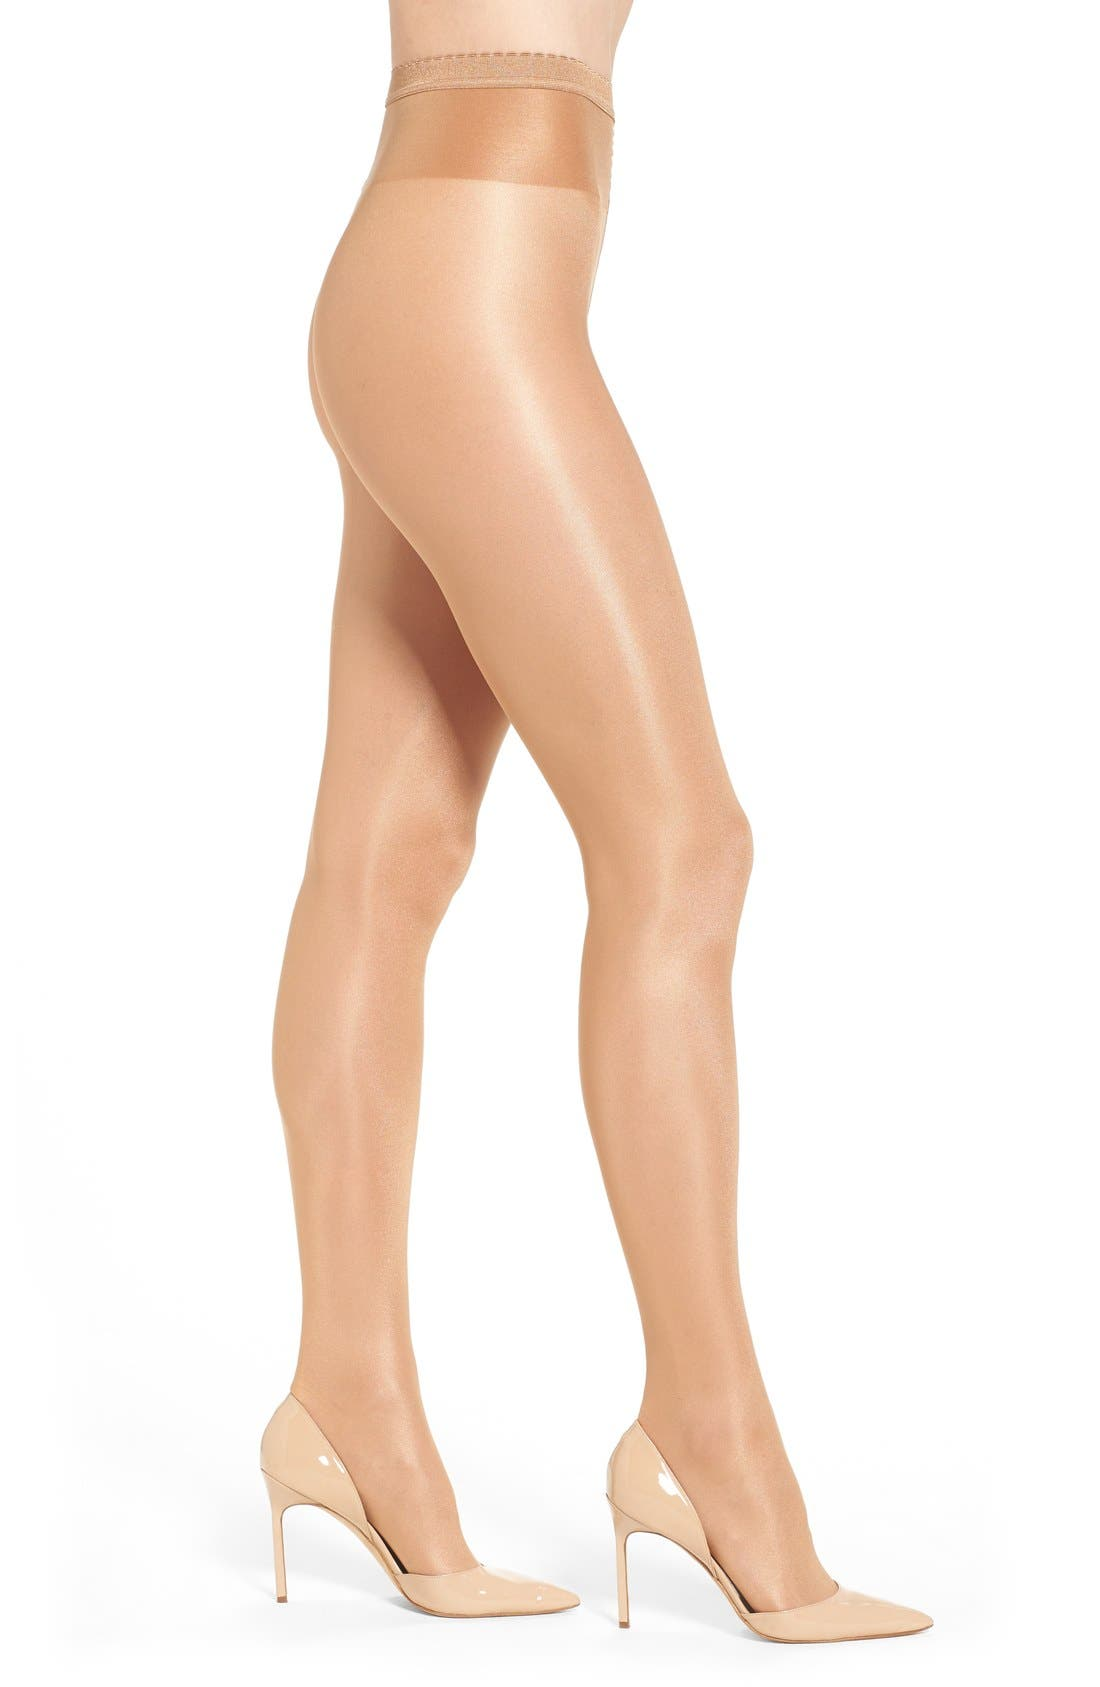 Wolford 'Neon 40' Pantyhose